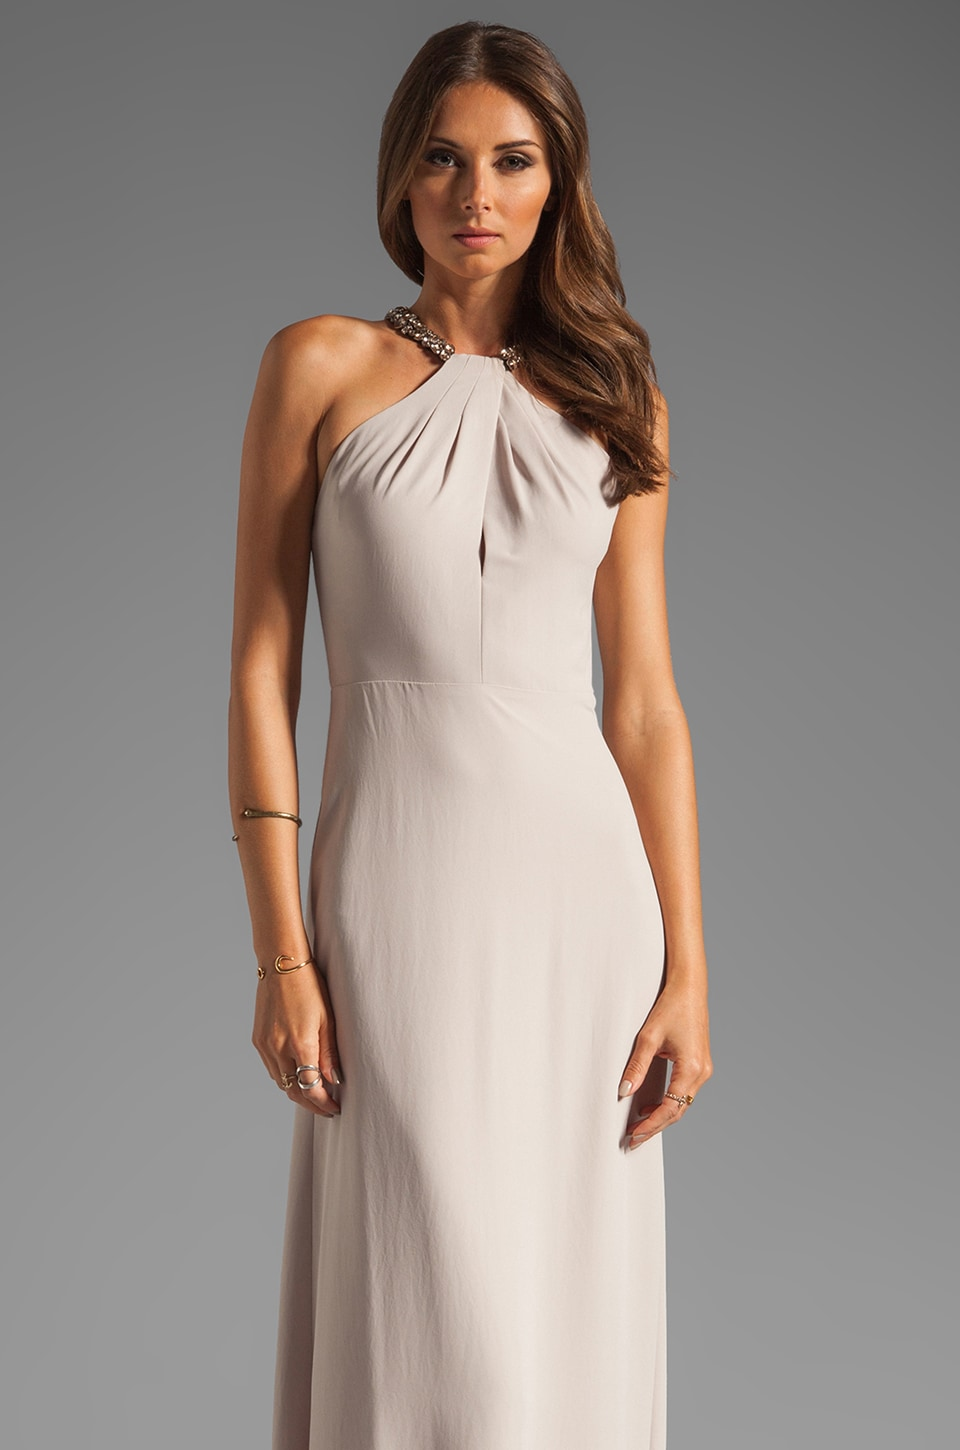 BCBGMAXAZRIA Maxi Dress in Light Stone